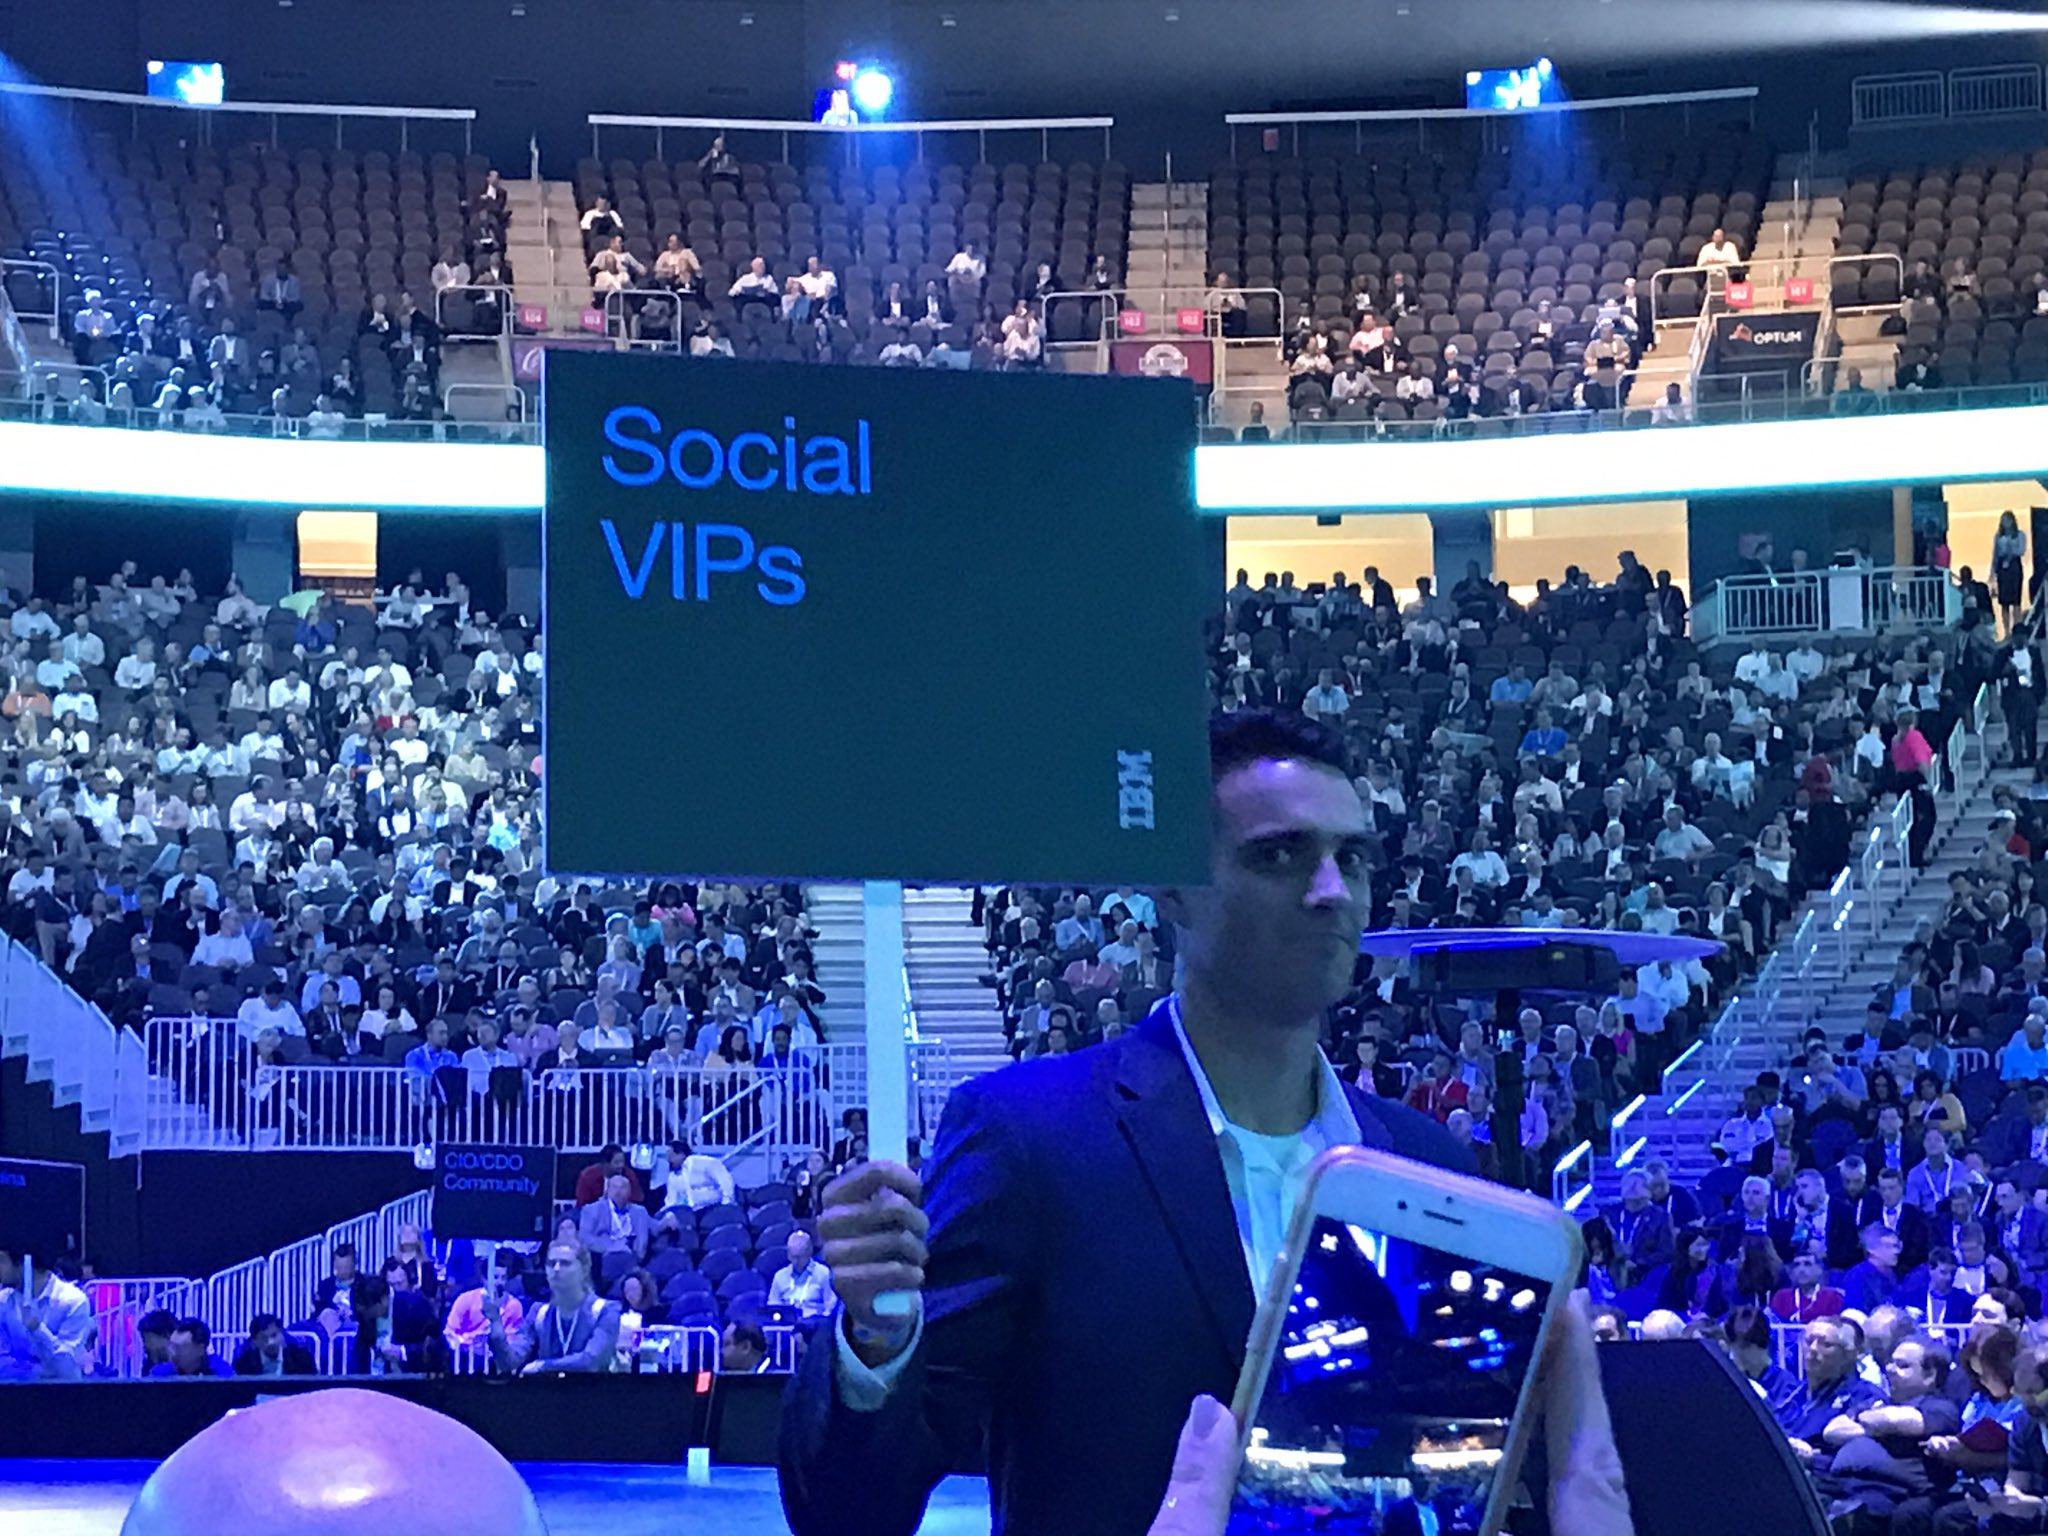 "A shout out to @erikariehle, @theRab and a host of other #IBM'ers for great hosting of us ""social VIPs"" at #ibmwow this week. #tech https://t.co/vGmJkdgyZI"